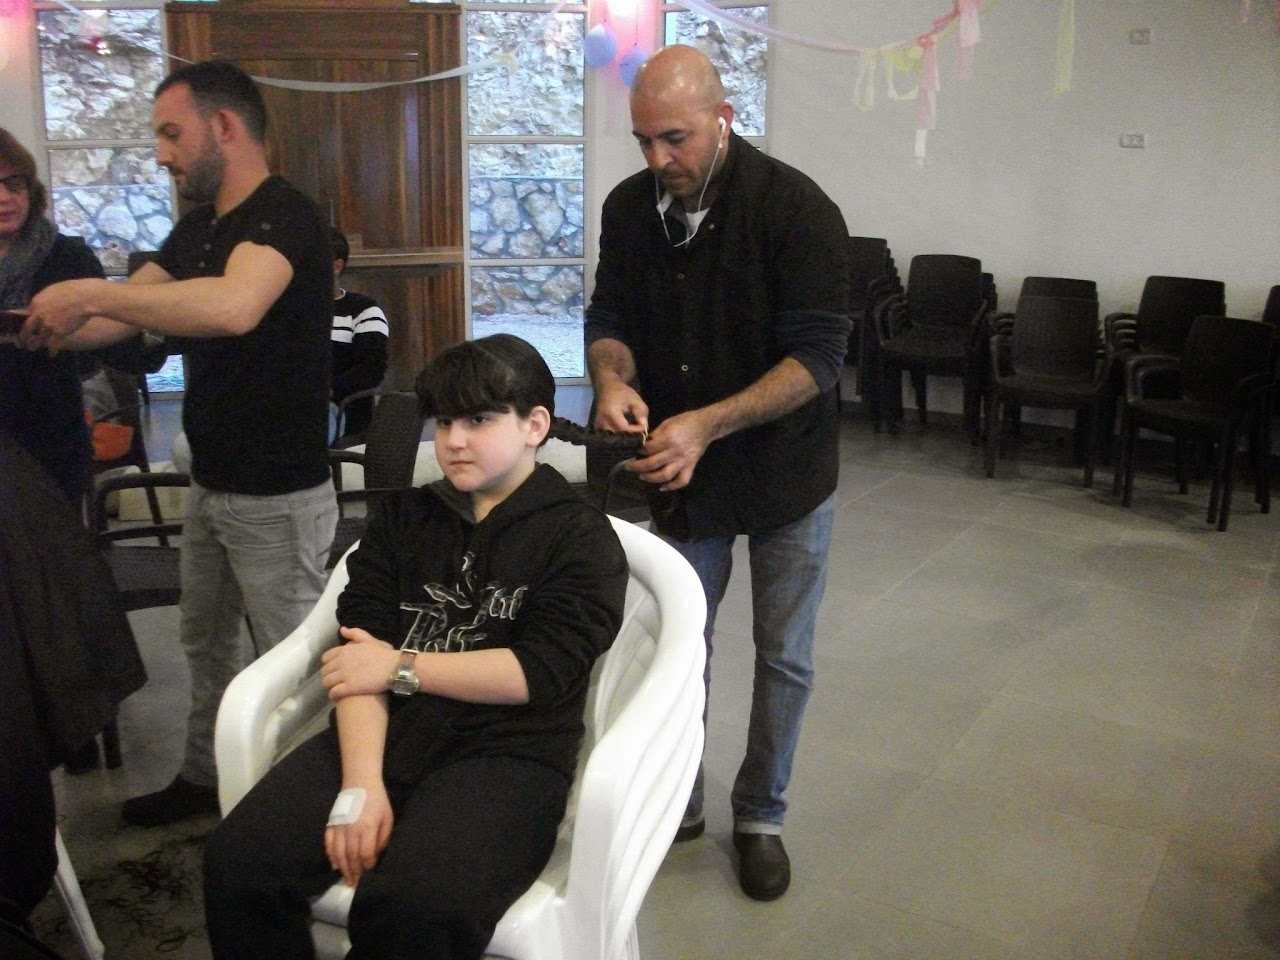 Donating hair for cancer patients 2014  - 1504363_539677056148592_1931187093_o.jpg